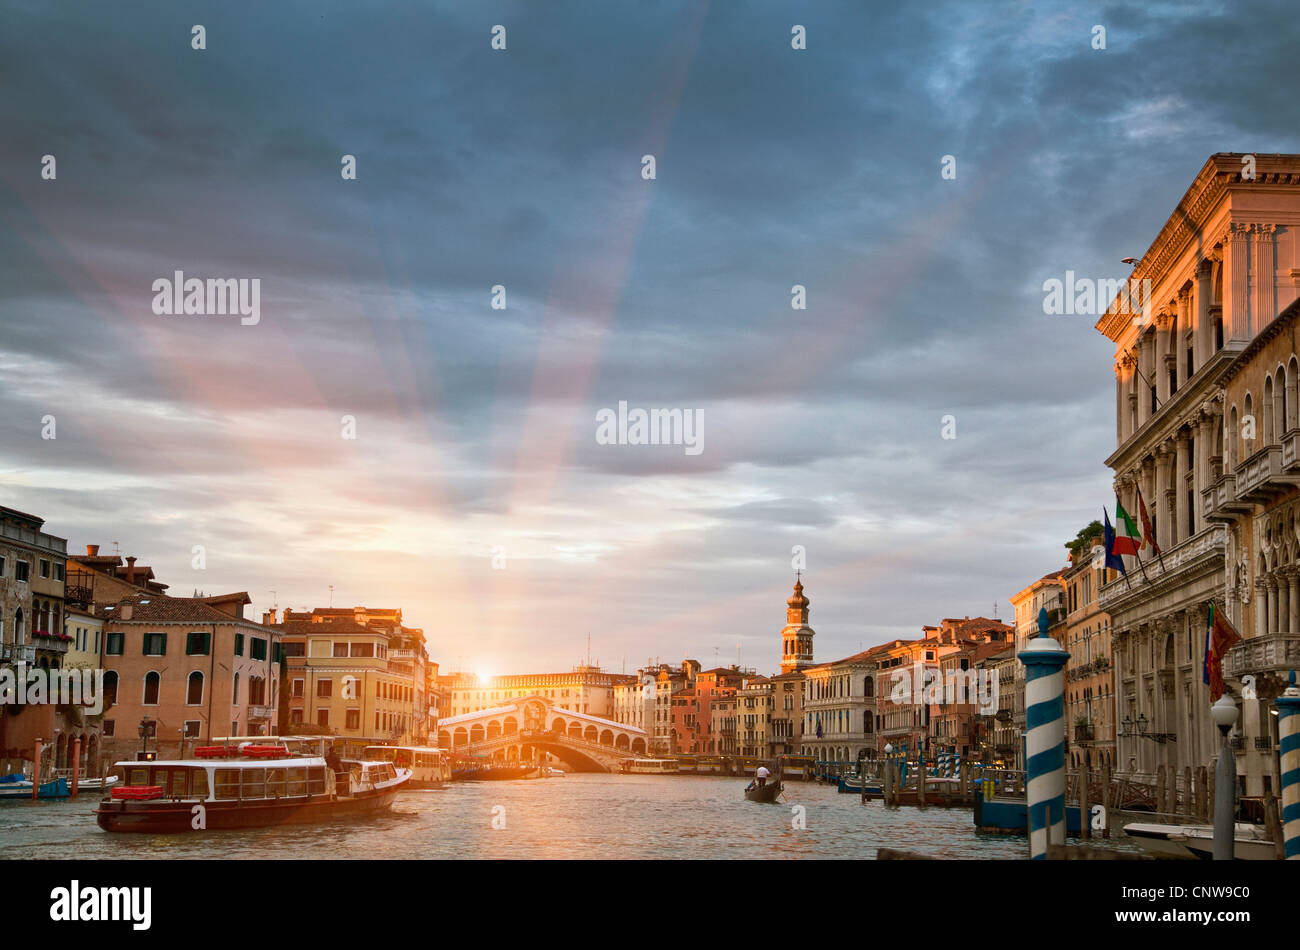 Buildings and ferryboat on urban canal - Stock Image